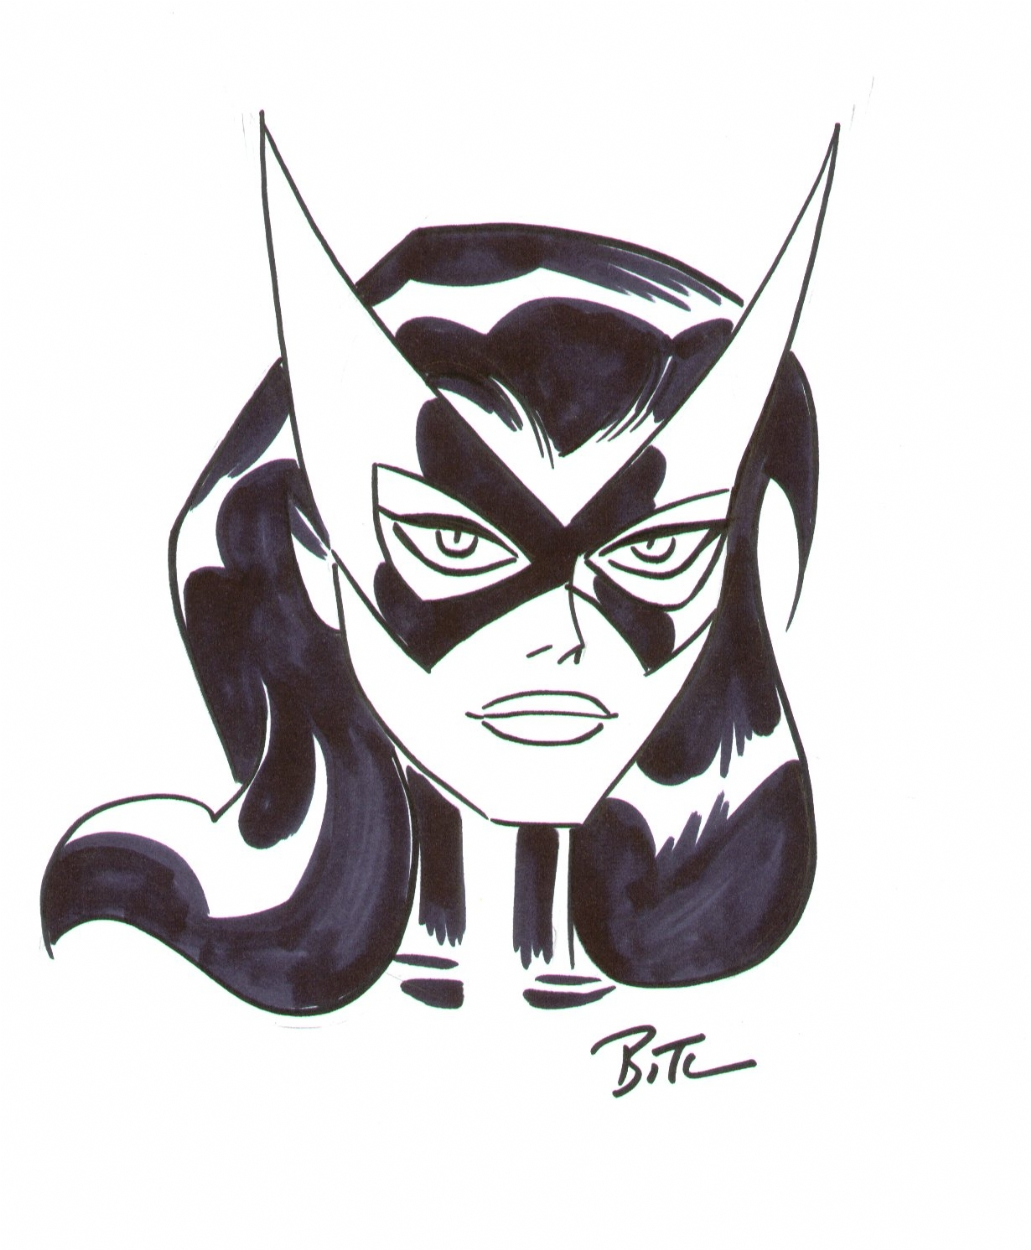 Justice League Unlimited Bruce Timm Huntress Sketch In Laura Mc S Justice League Unlimited Comic Art Gallery Room See more of justice league: justice league unlimited bruce timm